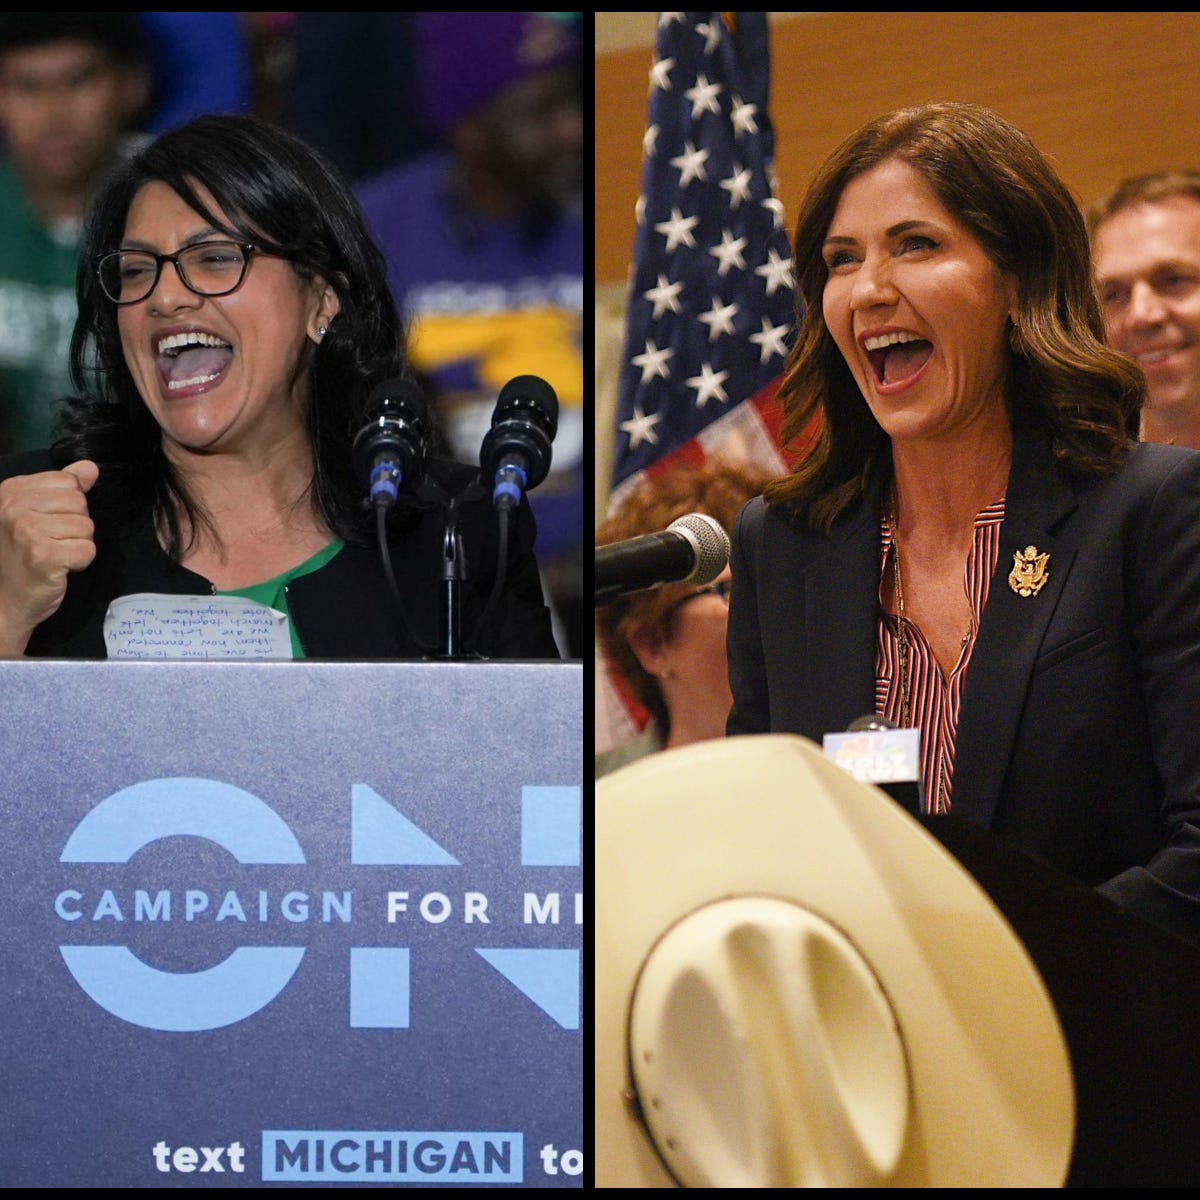 (Left to right) Rashida Tlaib, Kristi Noem and Donna Shalala were among the historic number of women elected across the political spectrum in 2018. Tlaib and Shalala were elected to the House of Representatives for Minnesota and Florida, respectively. Noem will serve as the first female governor of South Dakota.